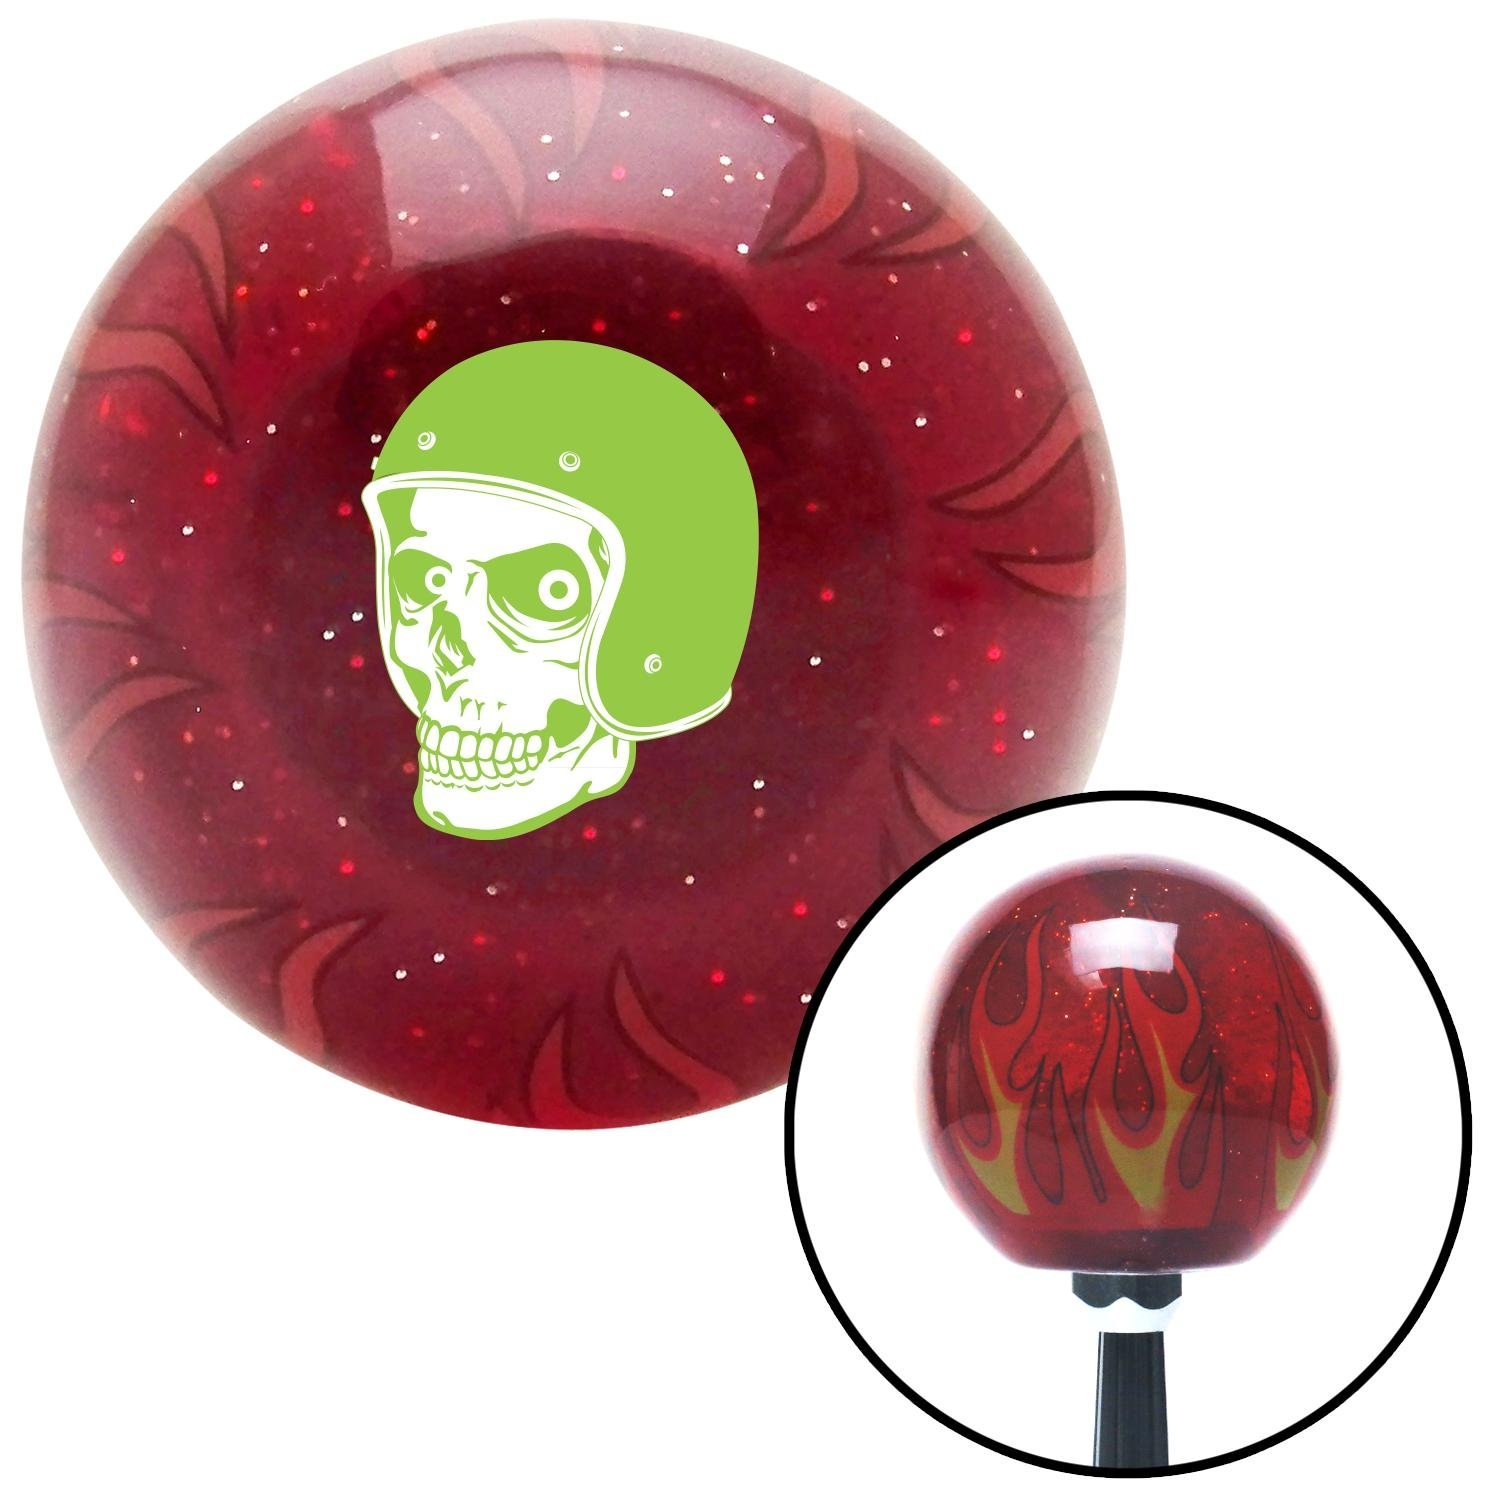 American Shifter 242498 Red Flame Metal Flake Shift Knob with M16 x 1.5 Insert Green Hellraiser Skull